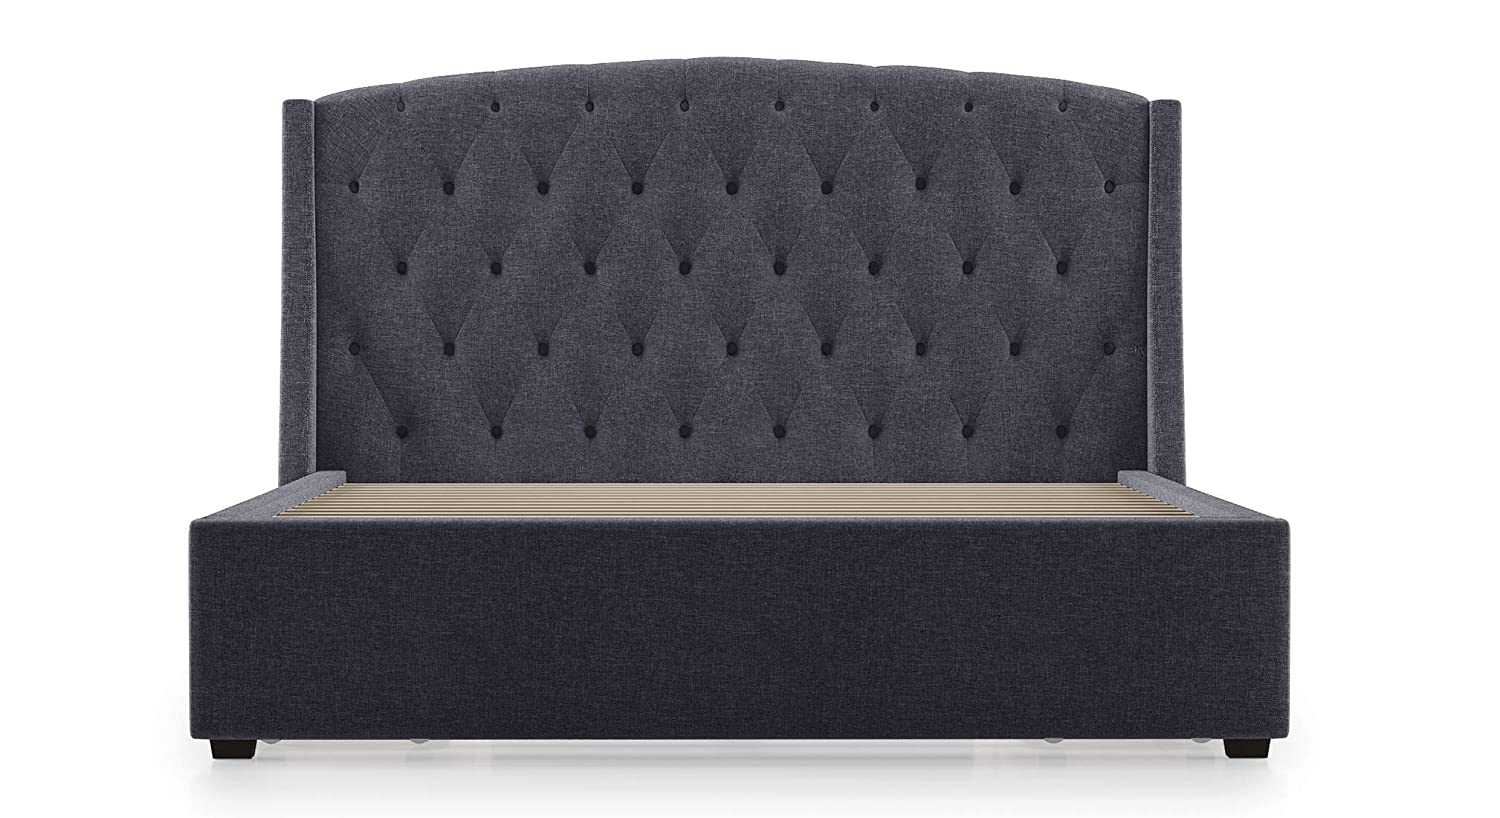 Anome Upholstered King Size Storage Bed ,upholstered bed with storage(Colour : Gray)